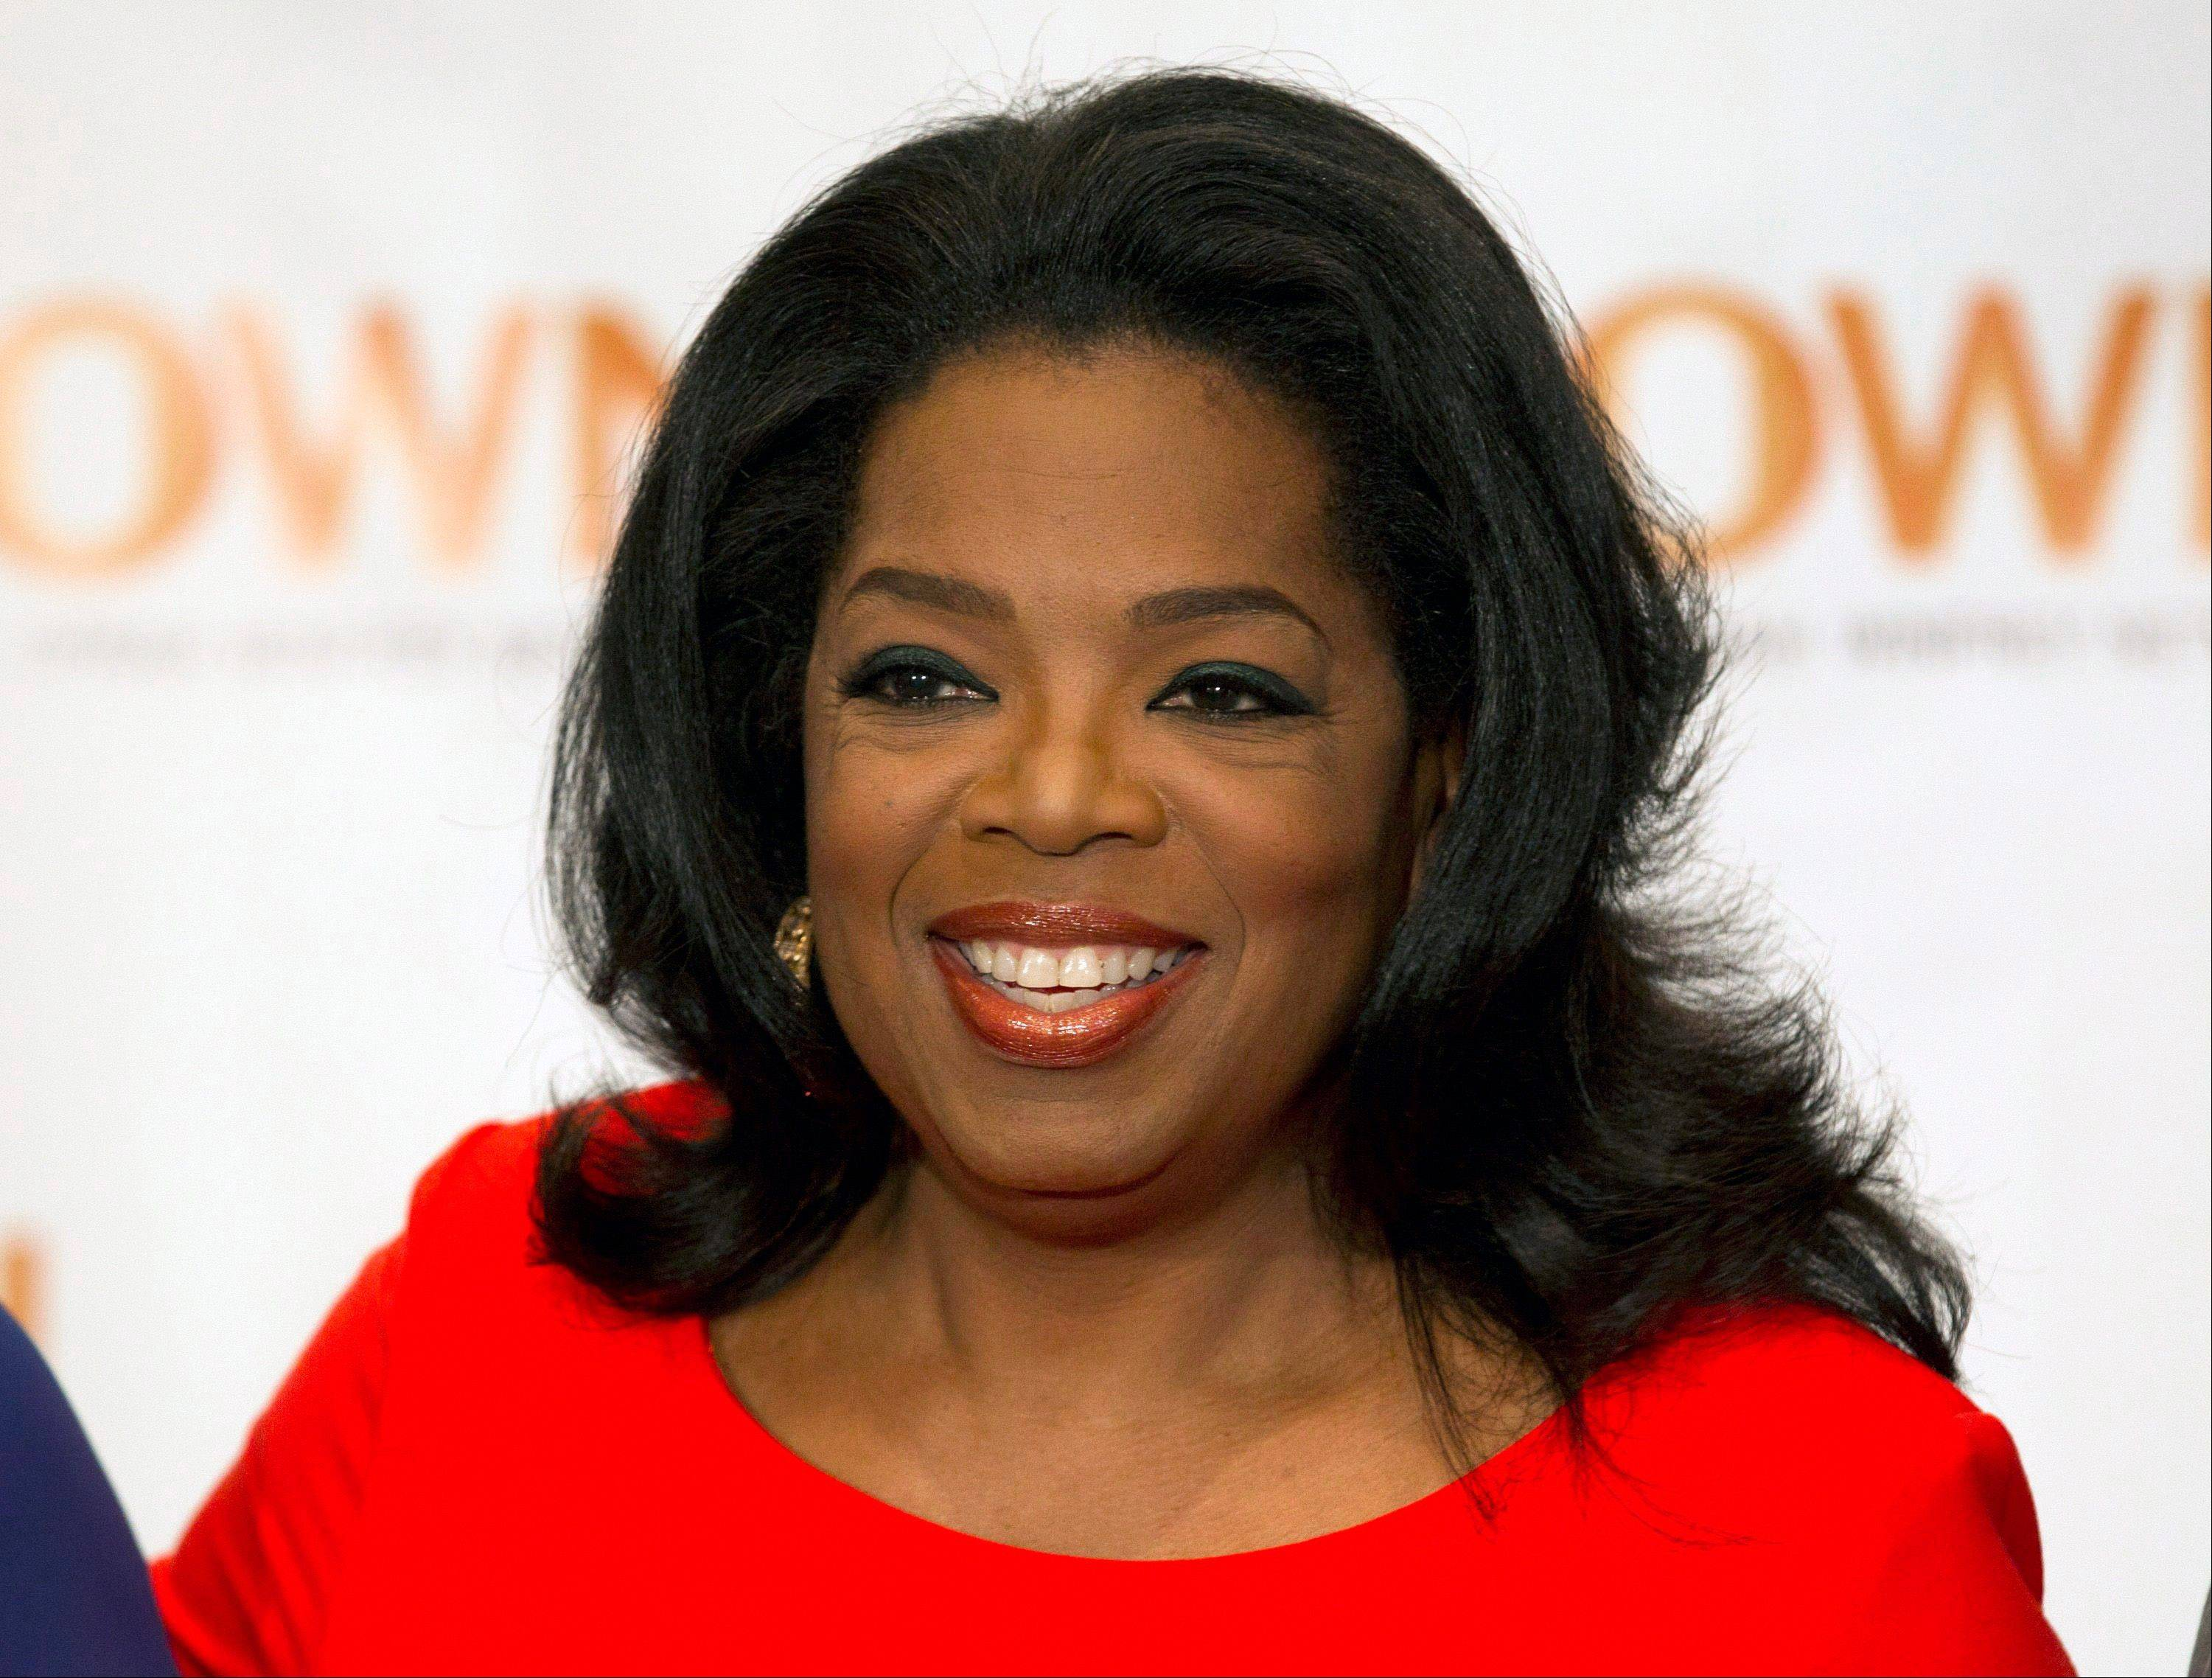 Oprah Winfrey has announced that she has chosen �The Twelve Tribes of Hattie� by Ayana Mathis for her book club.